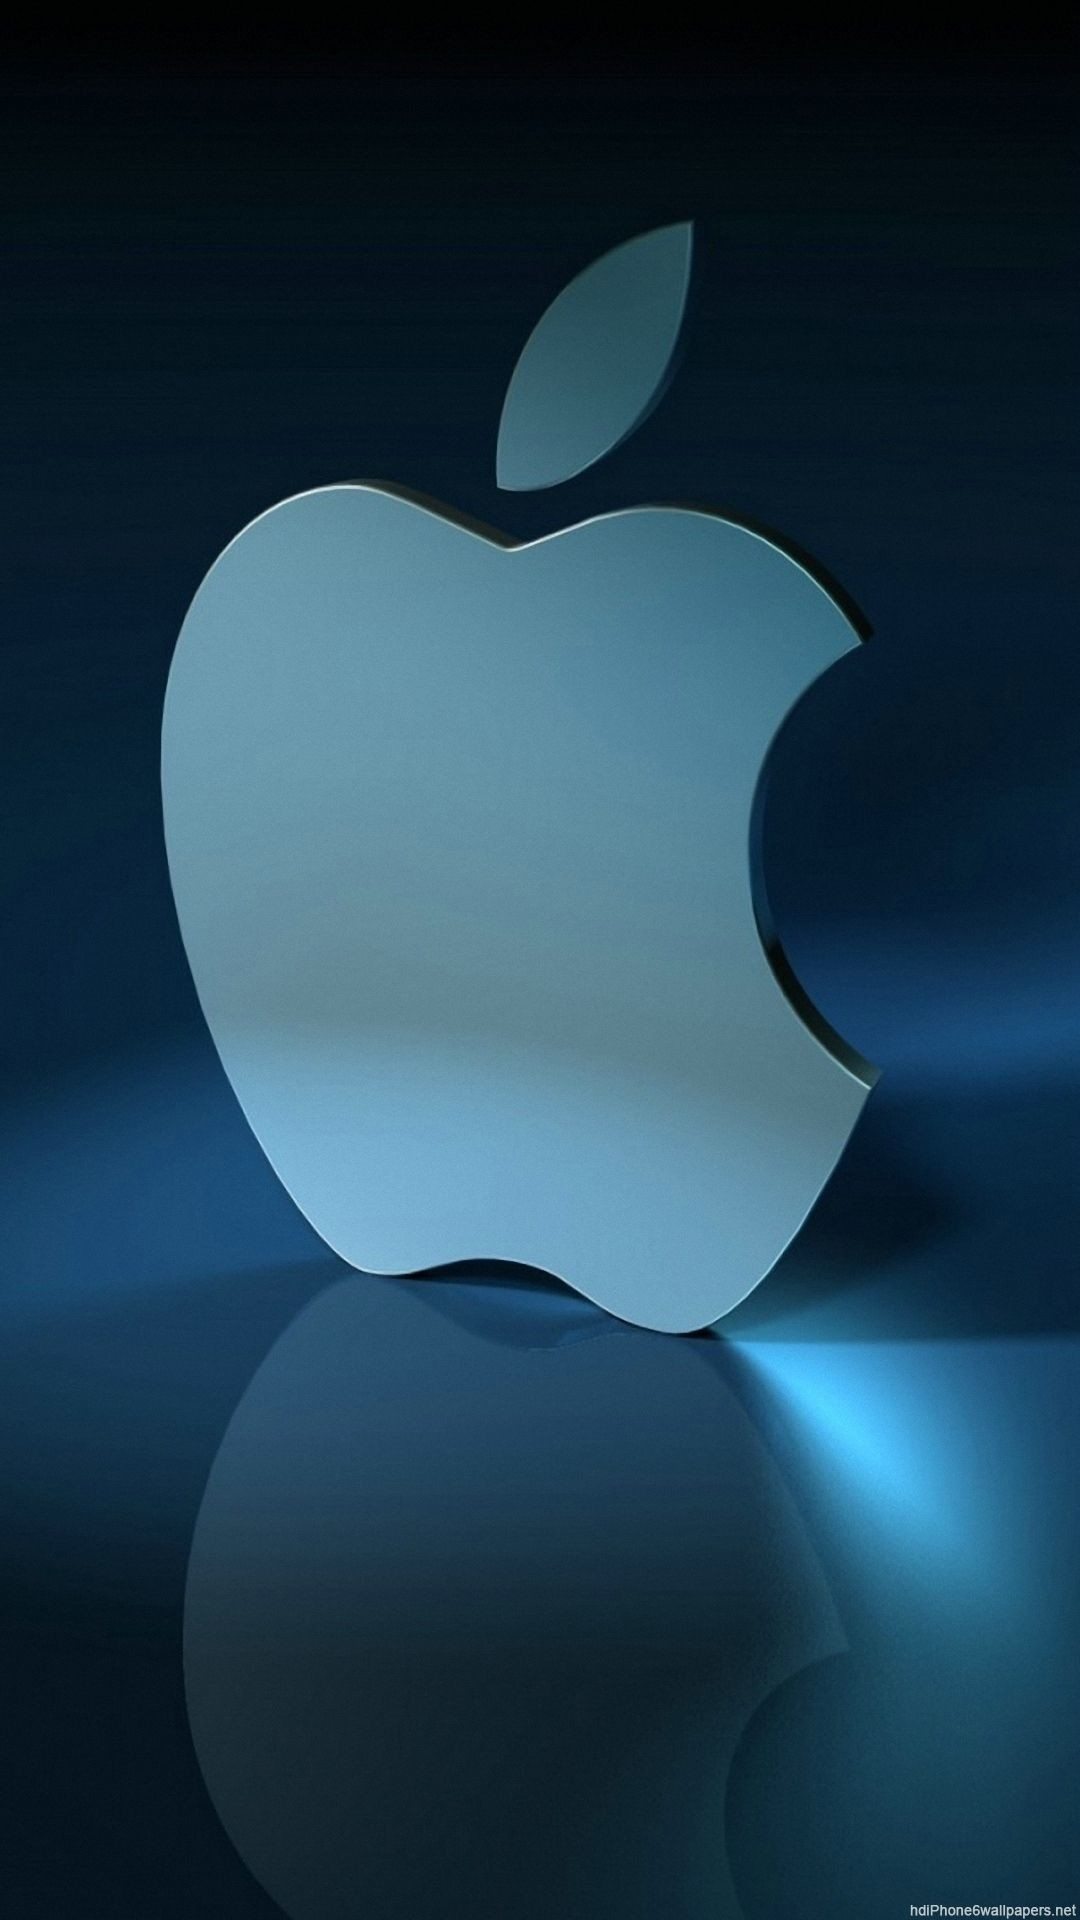 Res: 1080x1920, Black Glossy Apple Logo iPhone Wallpaper HD - iPhone 5 Wallpapers